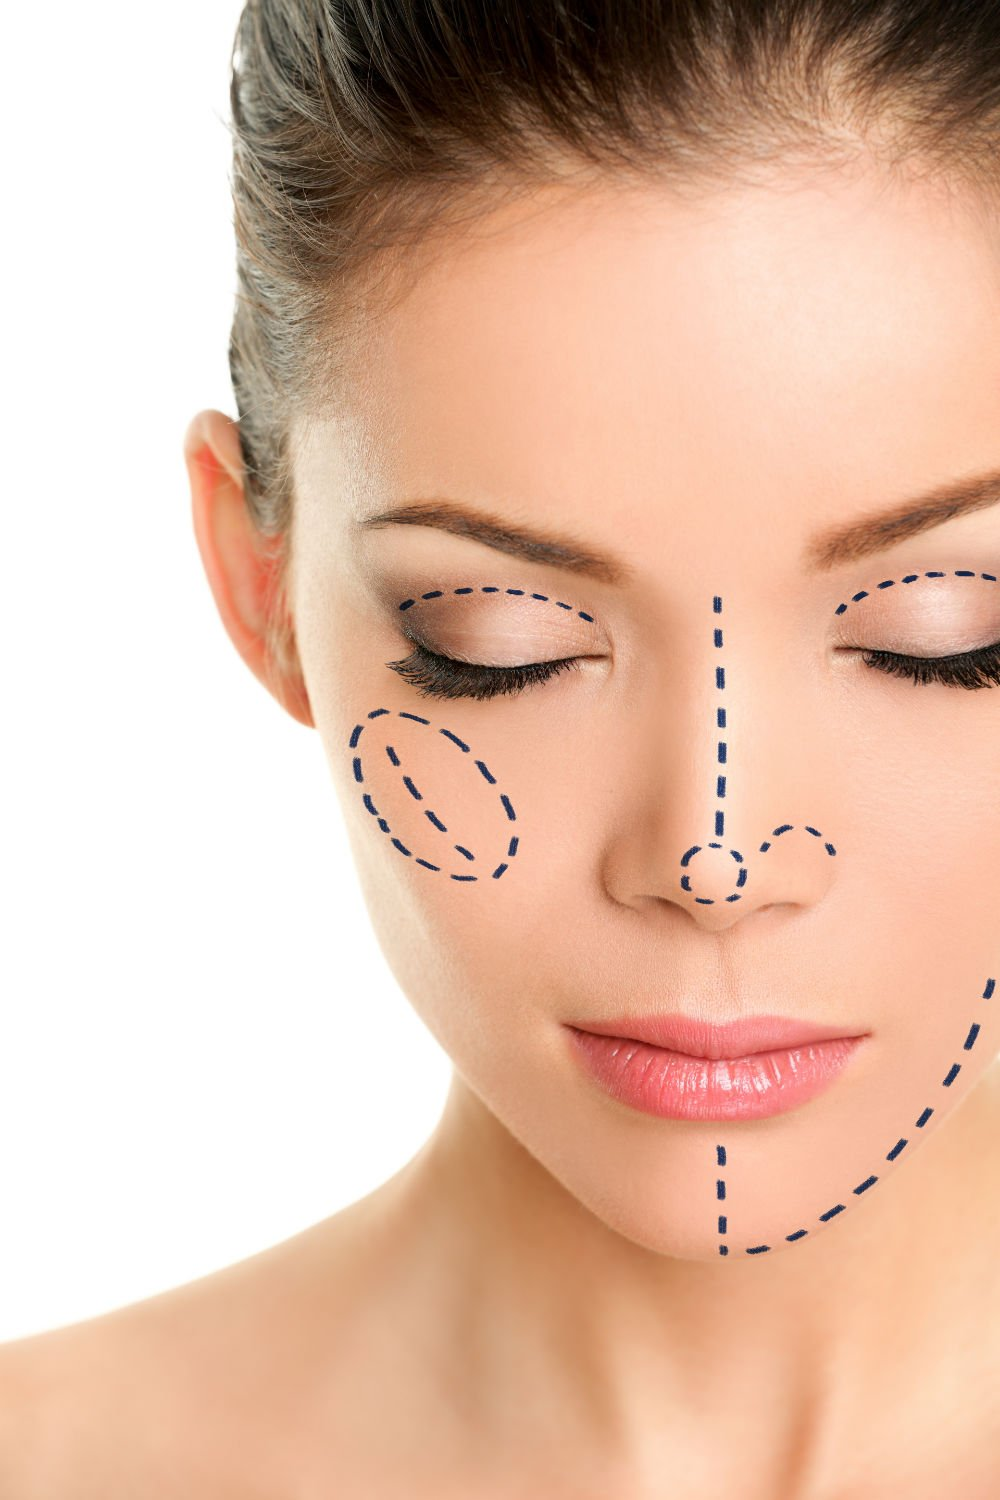 Things You Need to Know About Cosmetic Surgeries